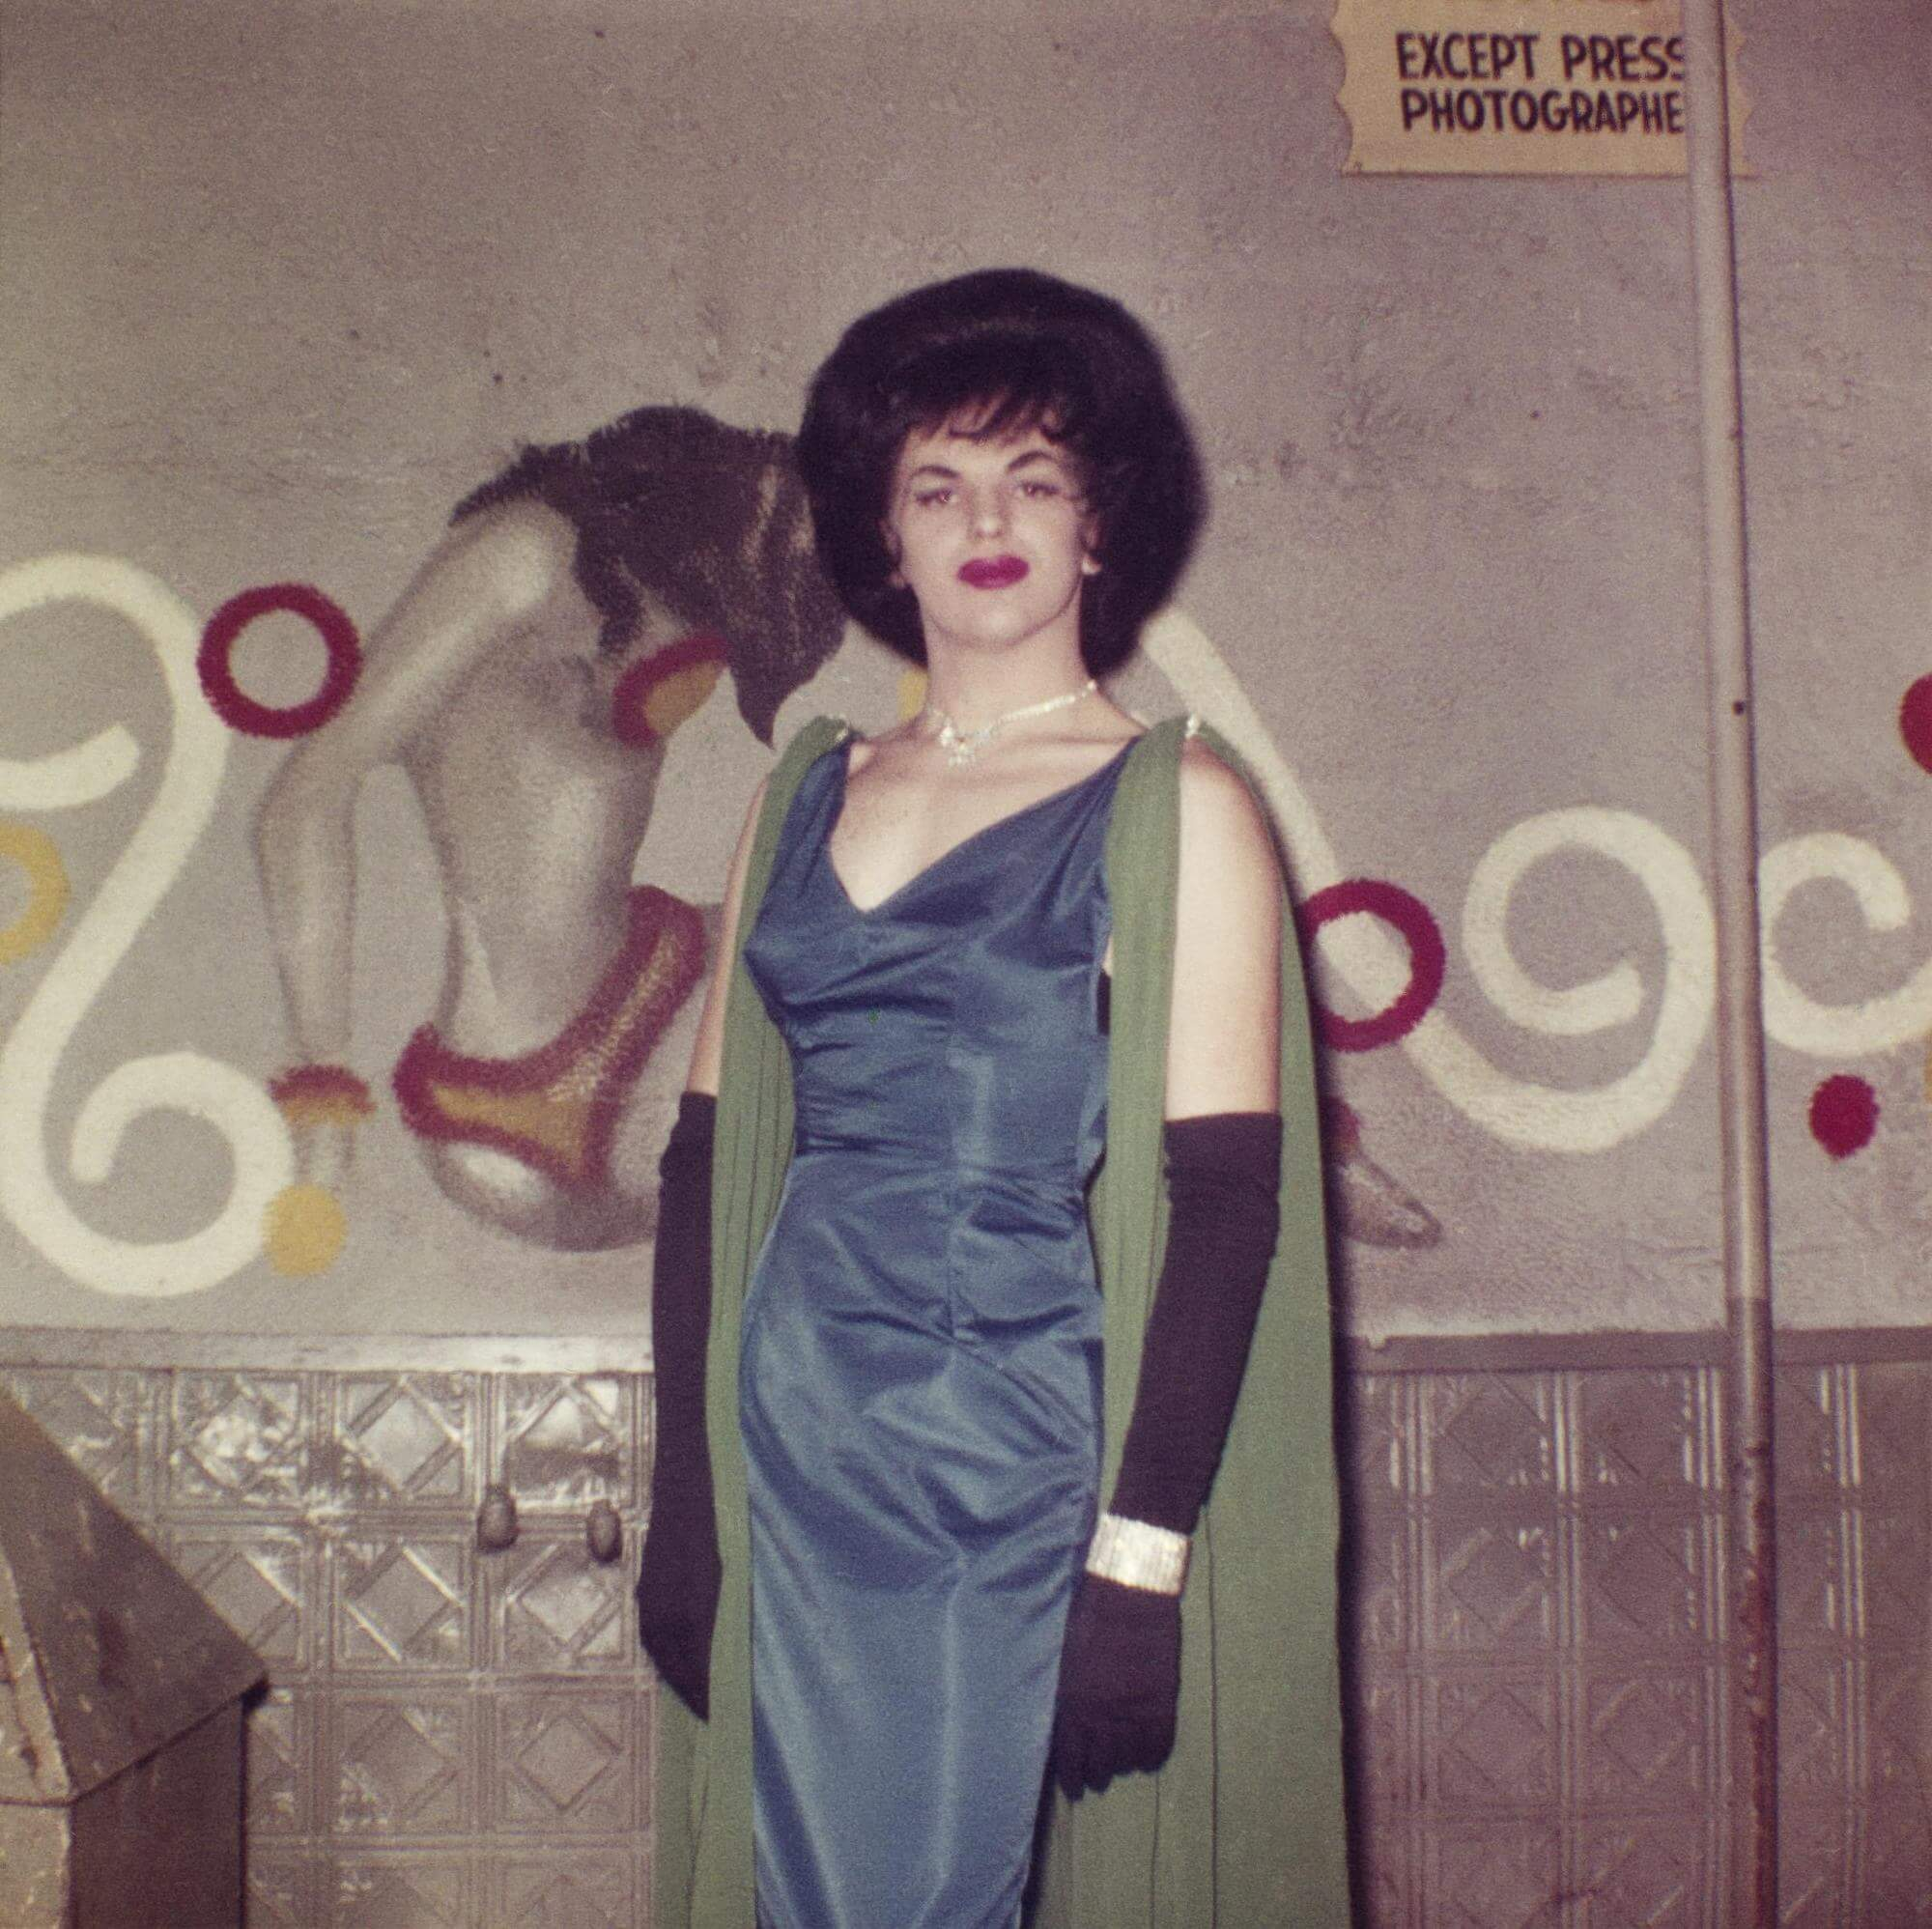 a-private-collector-shares-a-century-of-amateur-queer-photography-body-image-1468419699